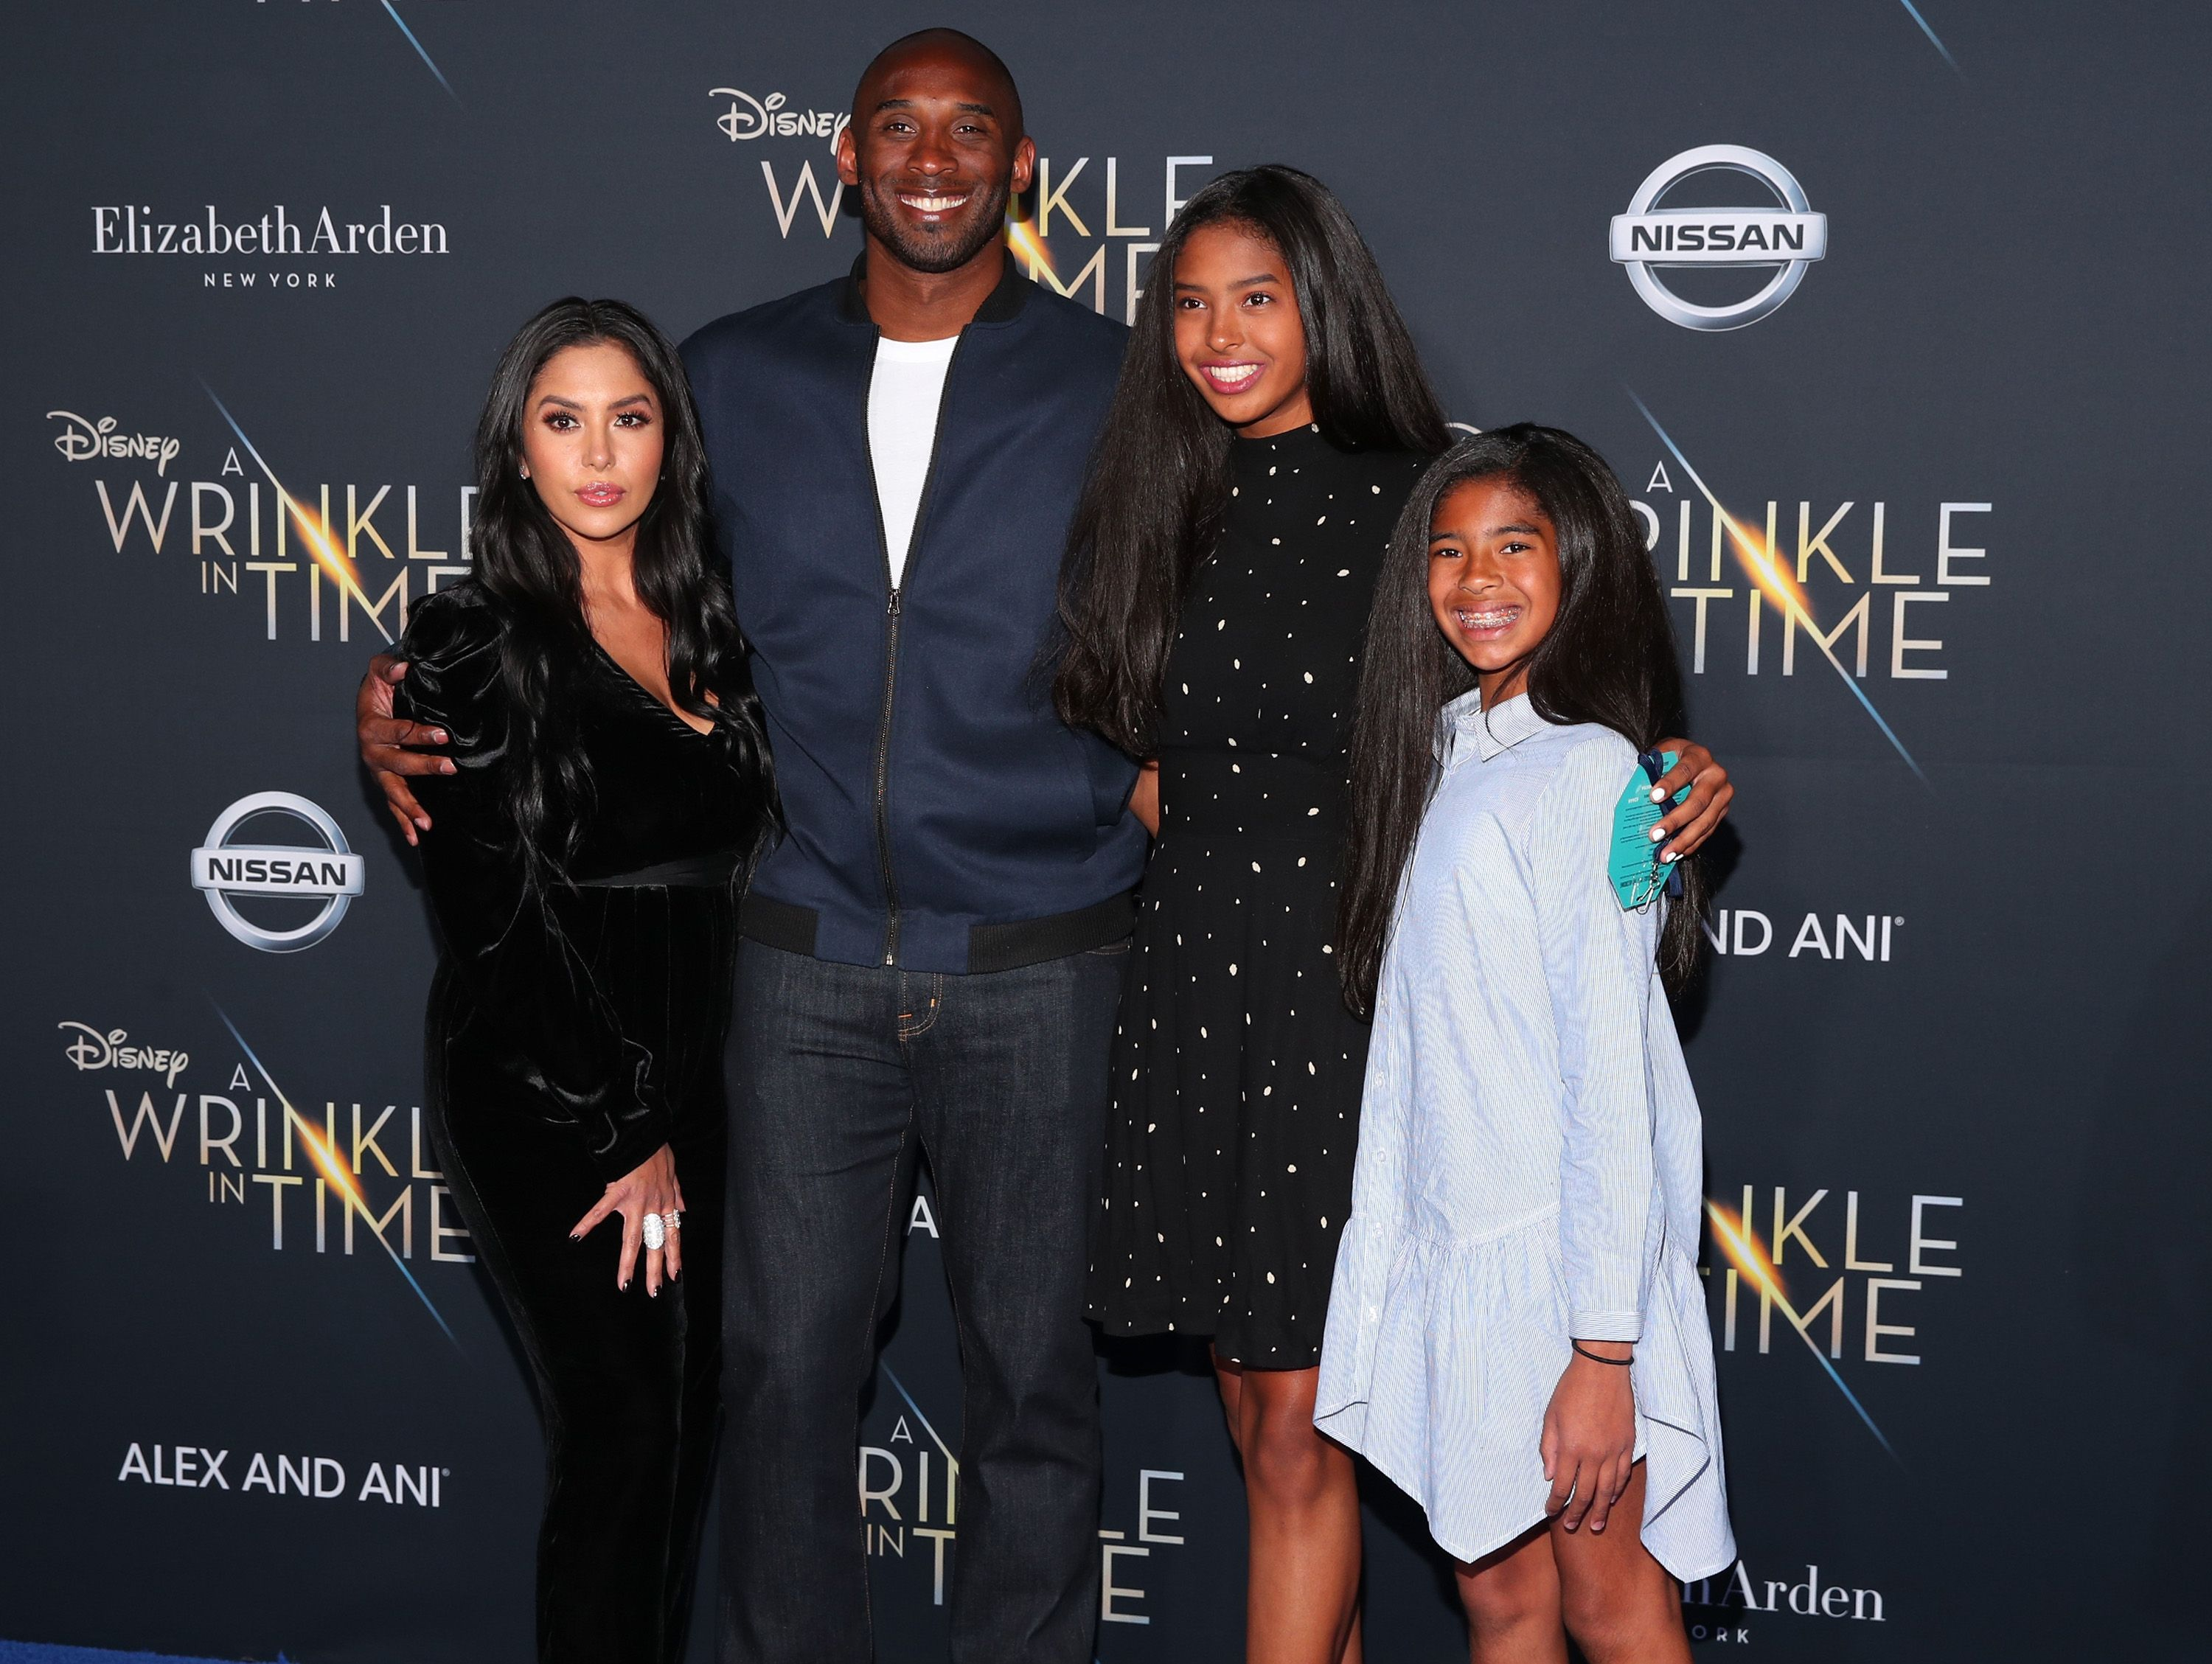 """Vanessa, Kobe, Natalia, and Gianna Bryant at the premiere of """"A Wrinkle In Time"""" on February 26, 2018, in Los Angeles, California   Photo: Christopher Polk/Getty Images"""